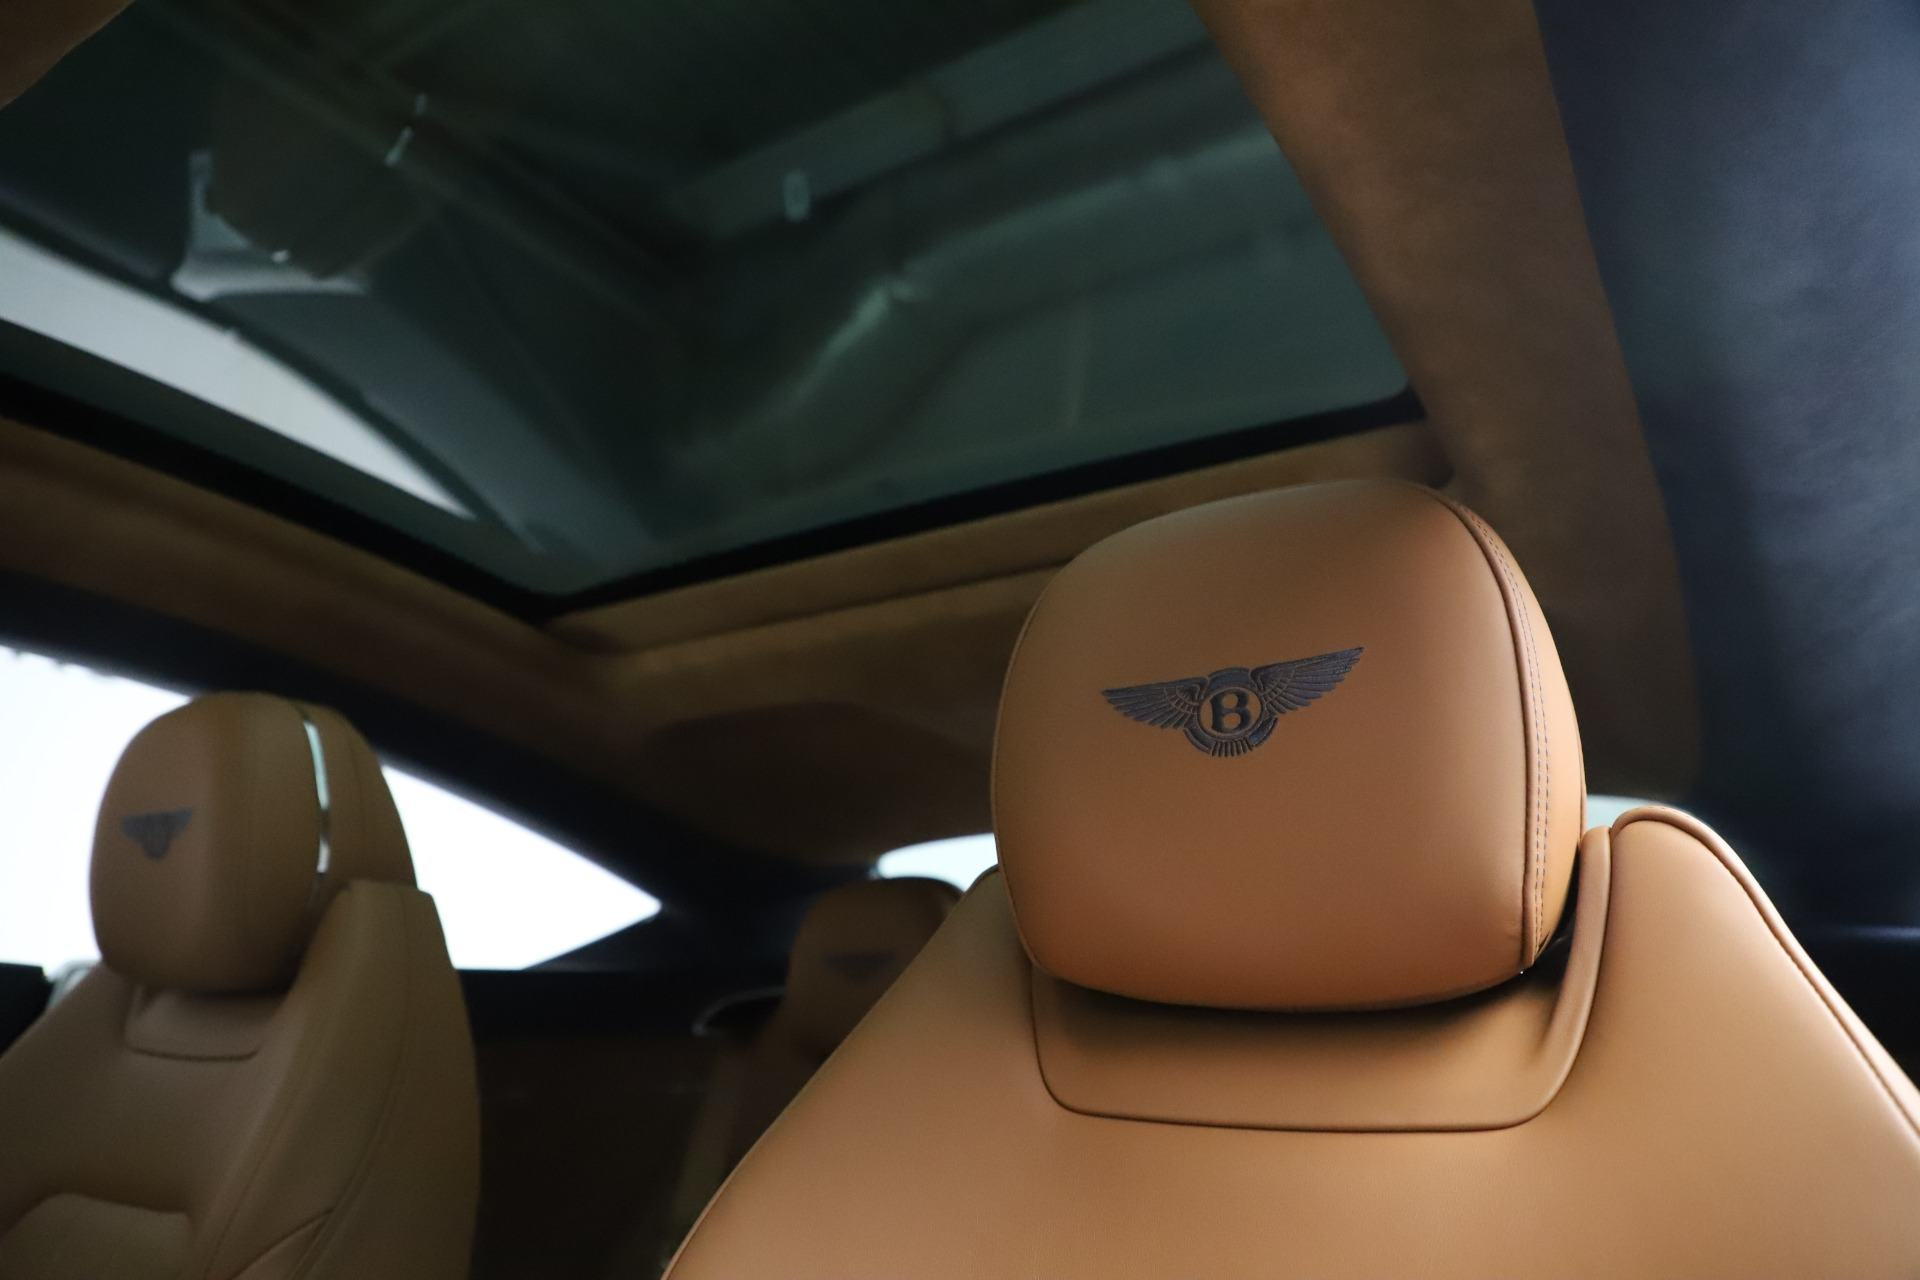 Bentley-Continental-GT-W12-Coupe-2020-2021-Muaxegiatot-vn-9